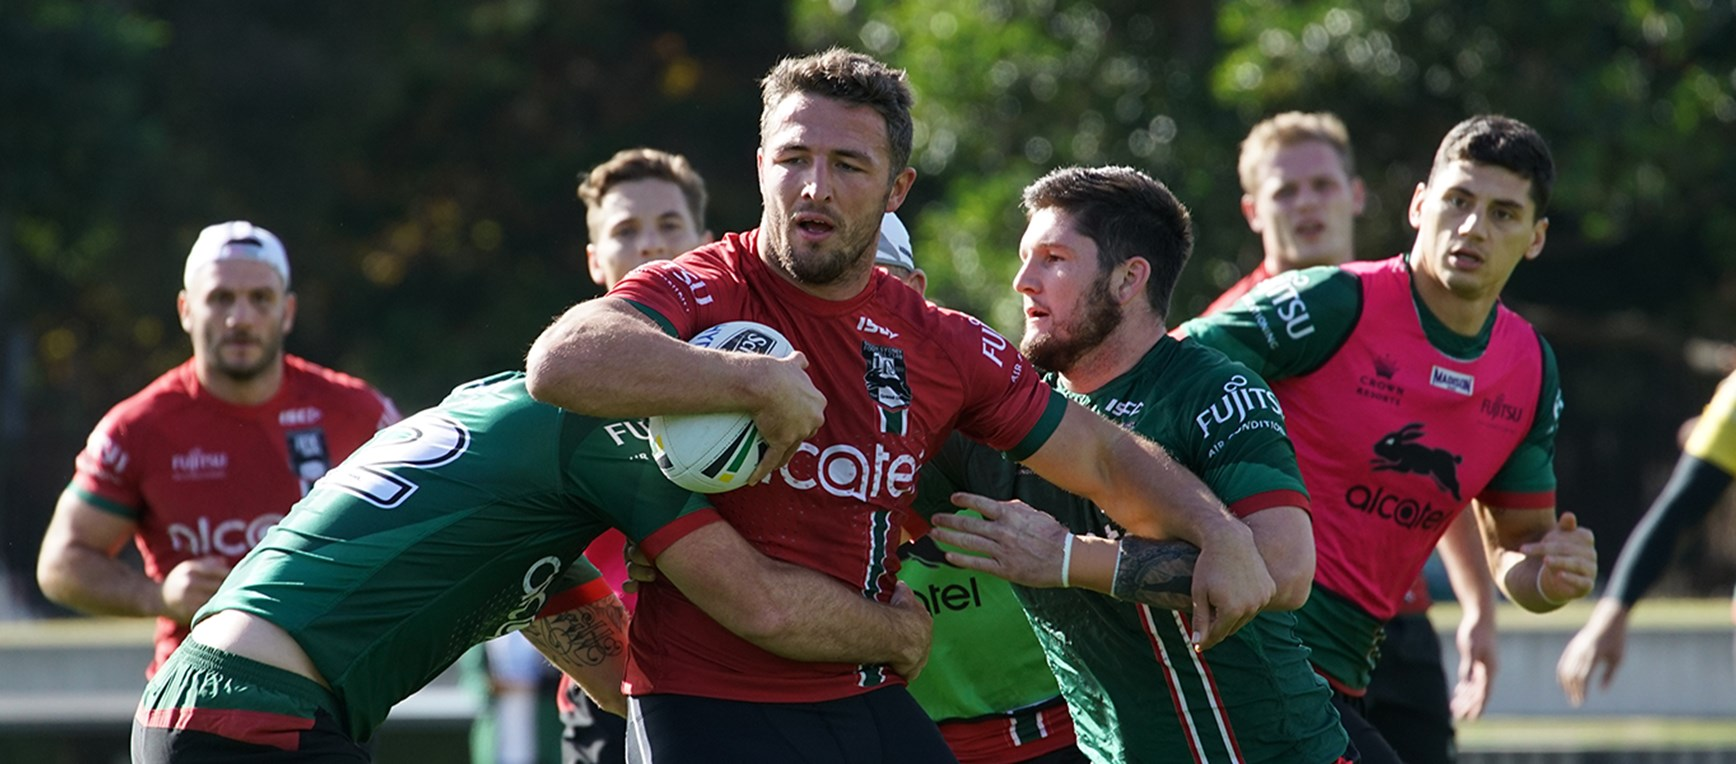 Gallery - Rabbitohs rip in ahead of Titans challenge